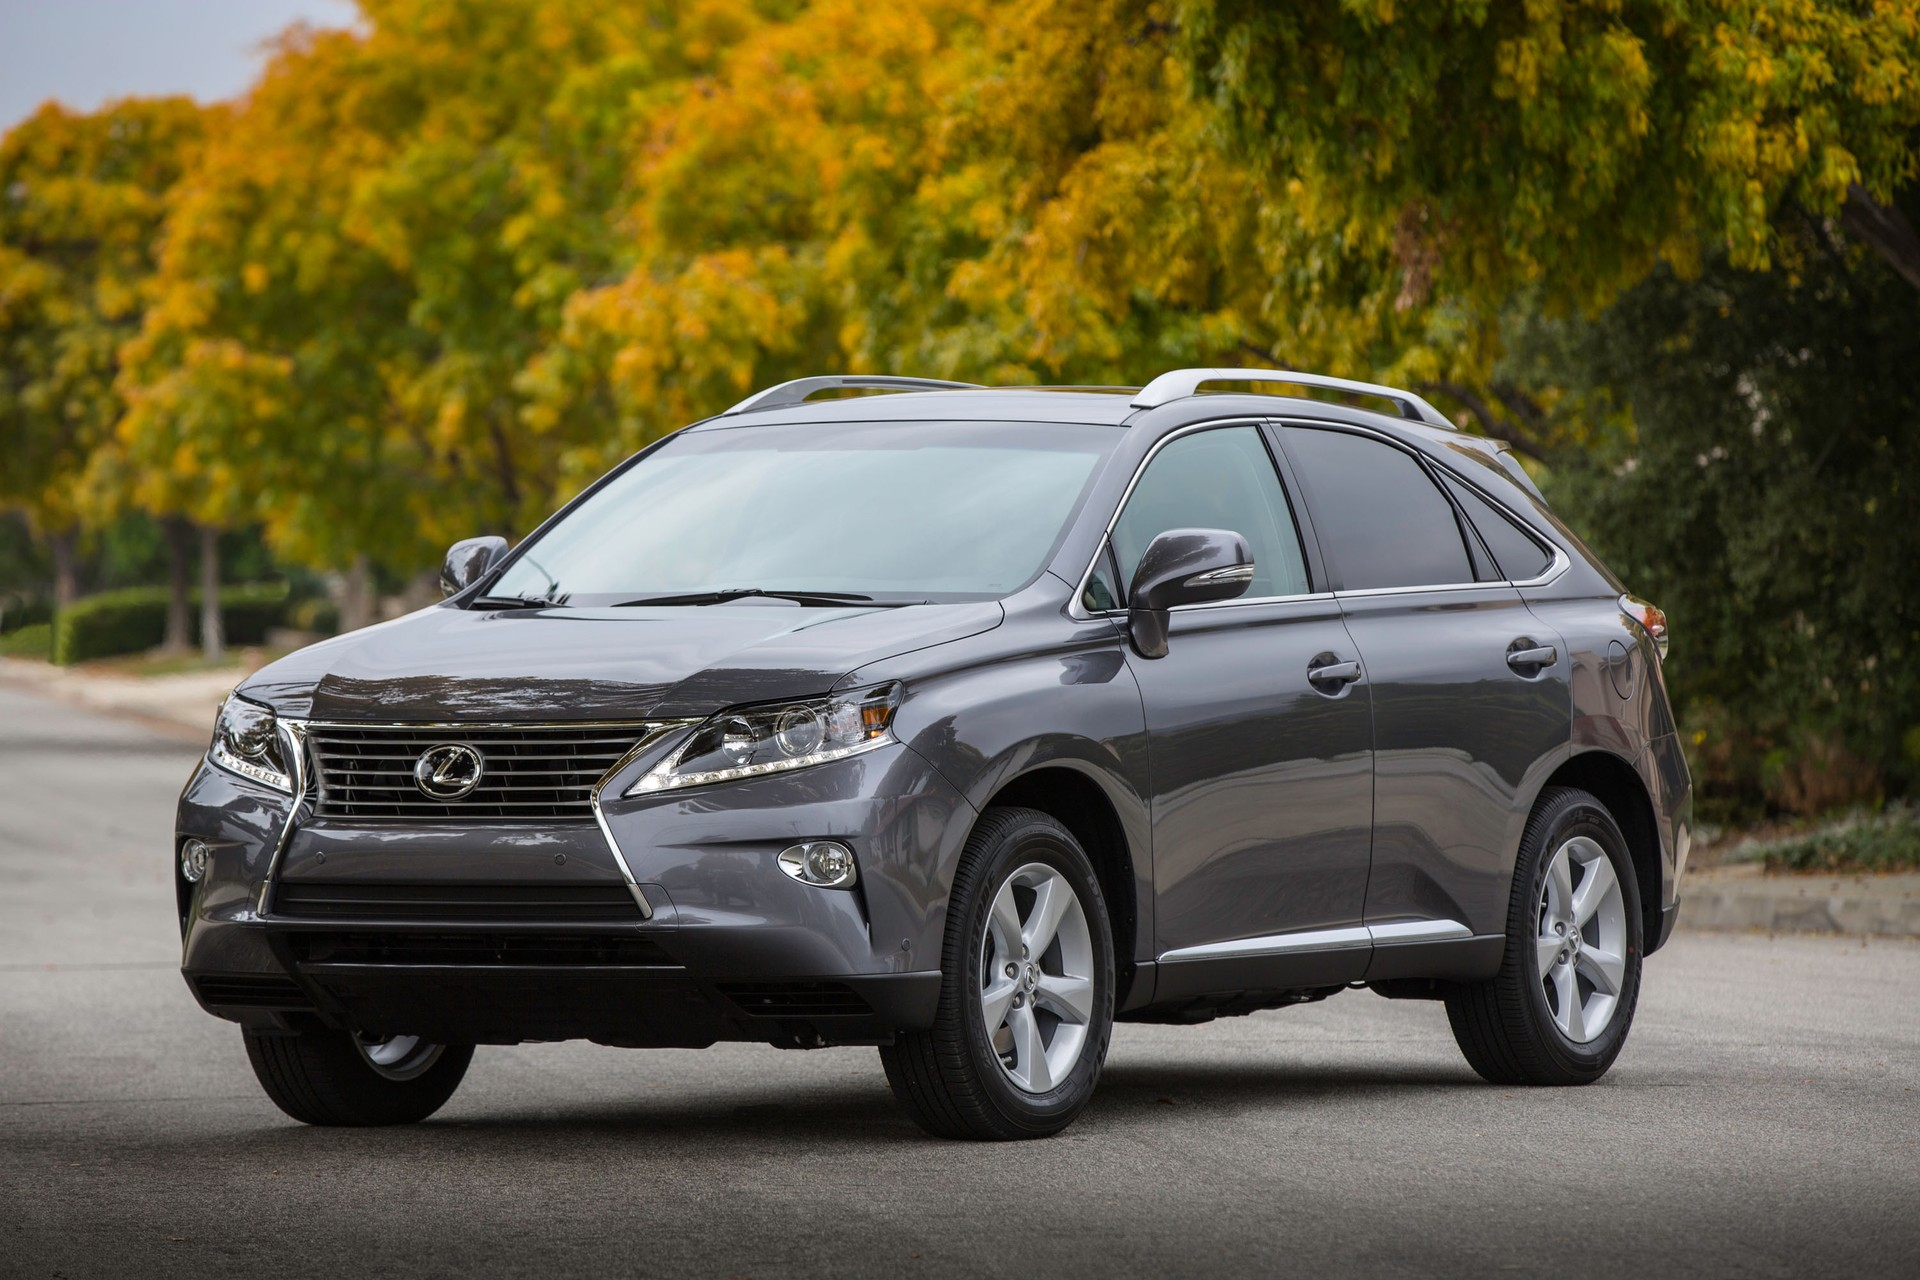 Dallas Toyota Dealers >> New and Used Lexus RX 350: Prices, Photos, Reviews, Specs - The Car Connection